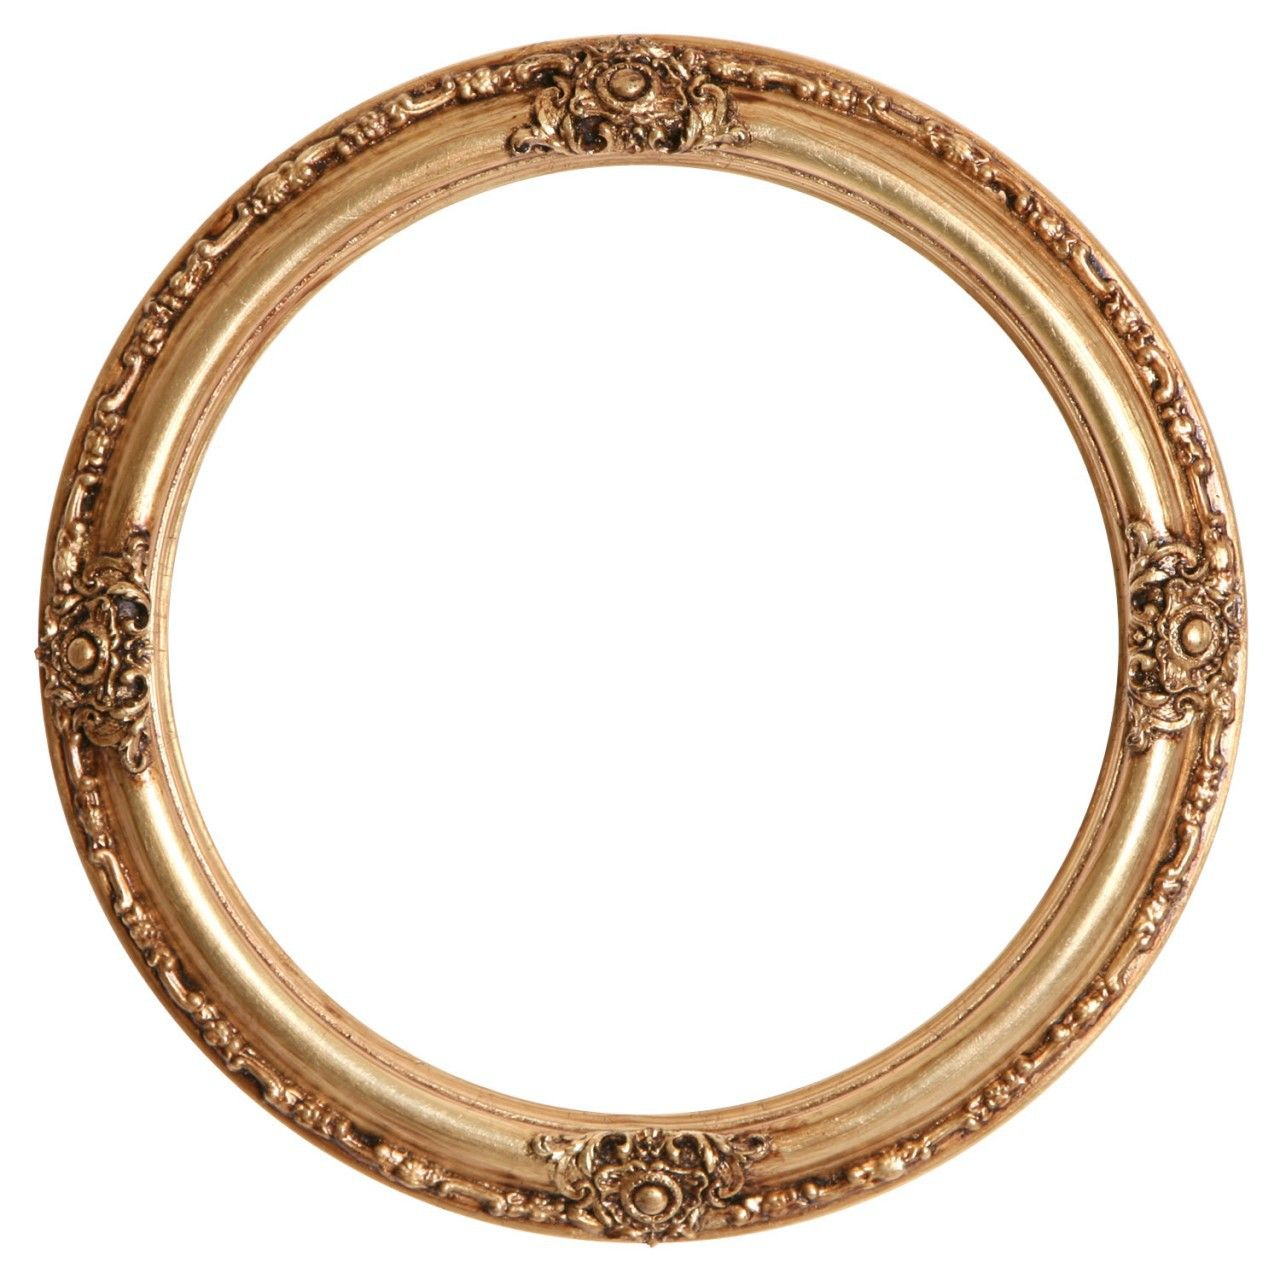 Jefferson Round Frame 601 Gold Leaf Gold Picture Frames Round Picture Frames Oval Picture Frames